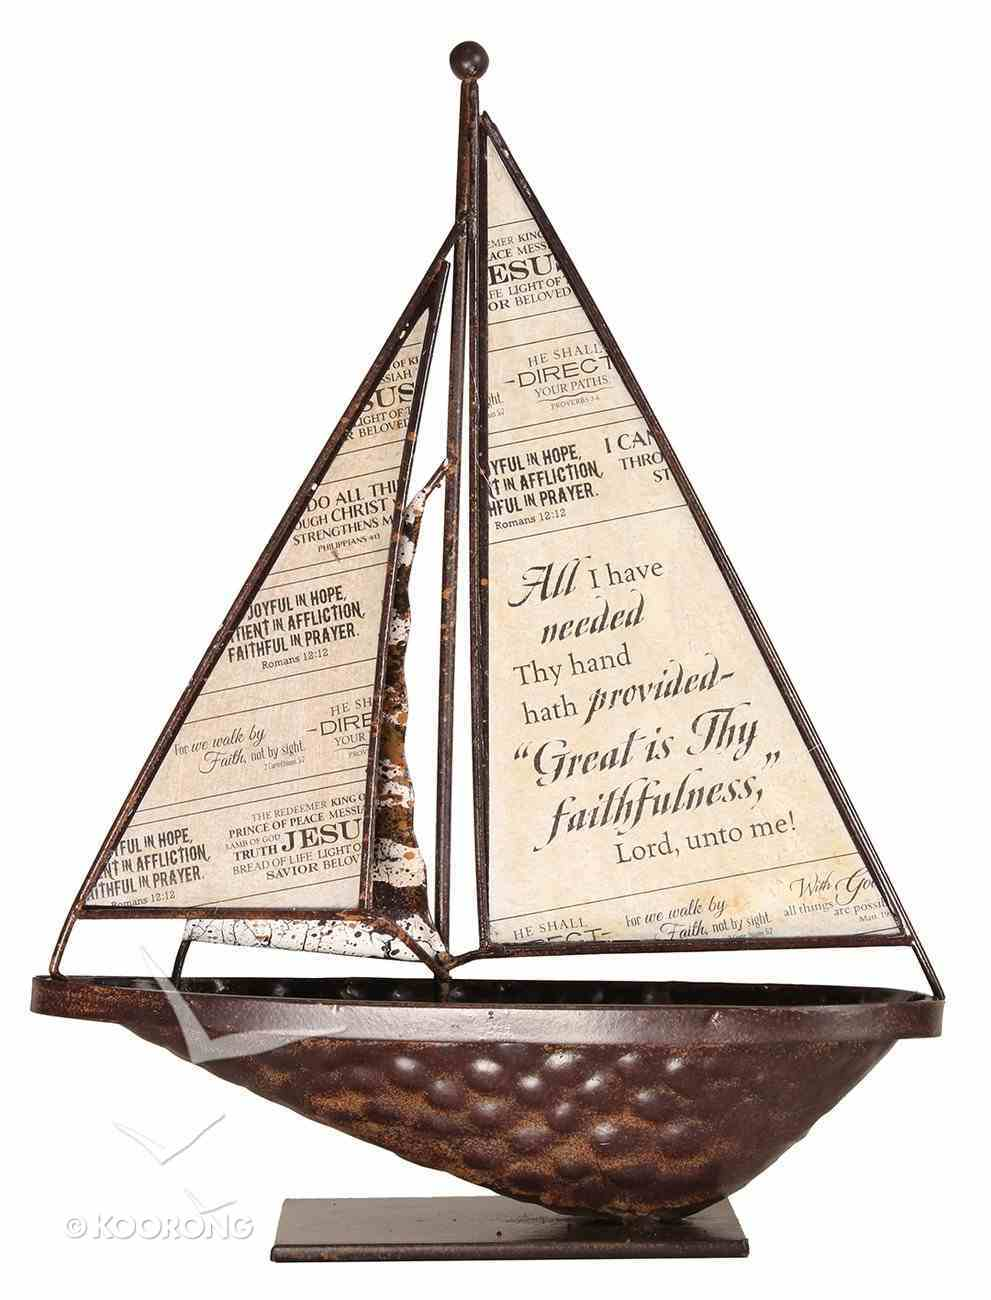 Sailboat Metal Tabletop: Great is Thy Faithfulness Homeware